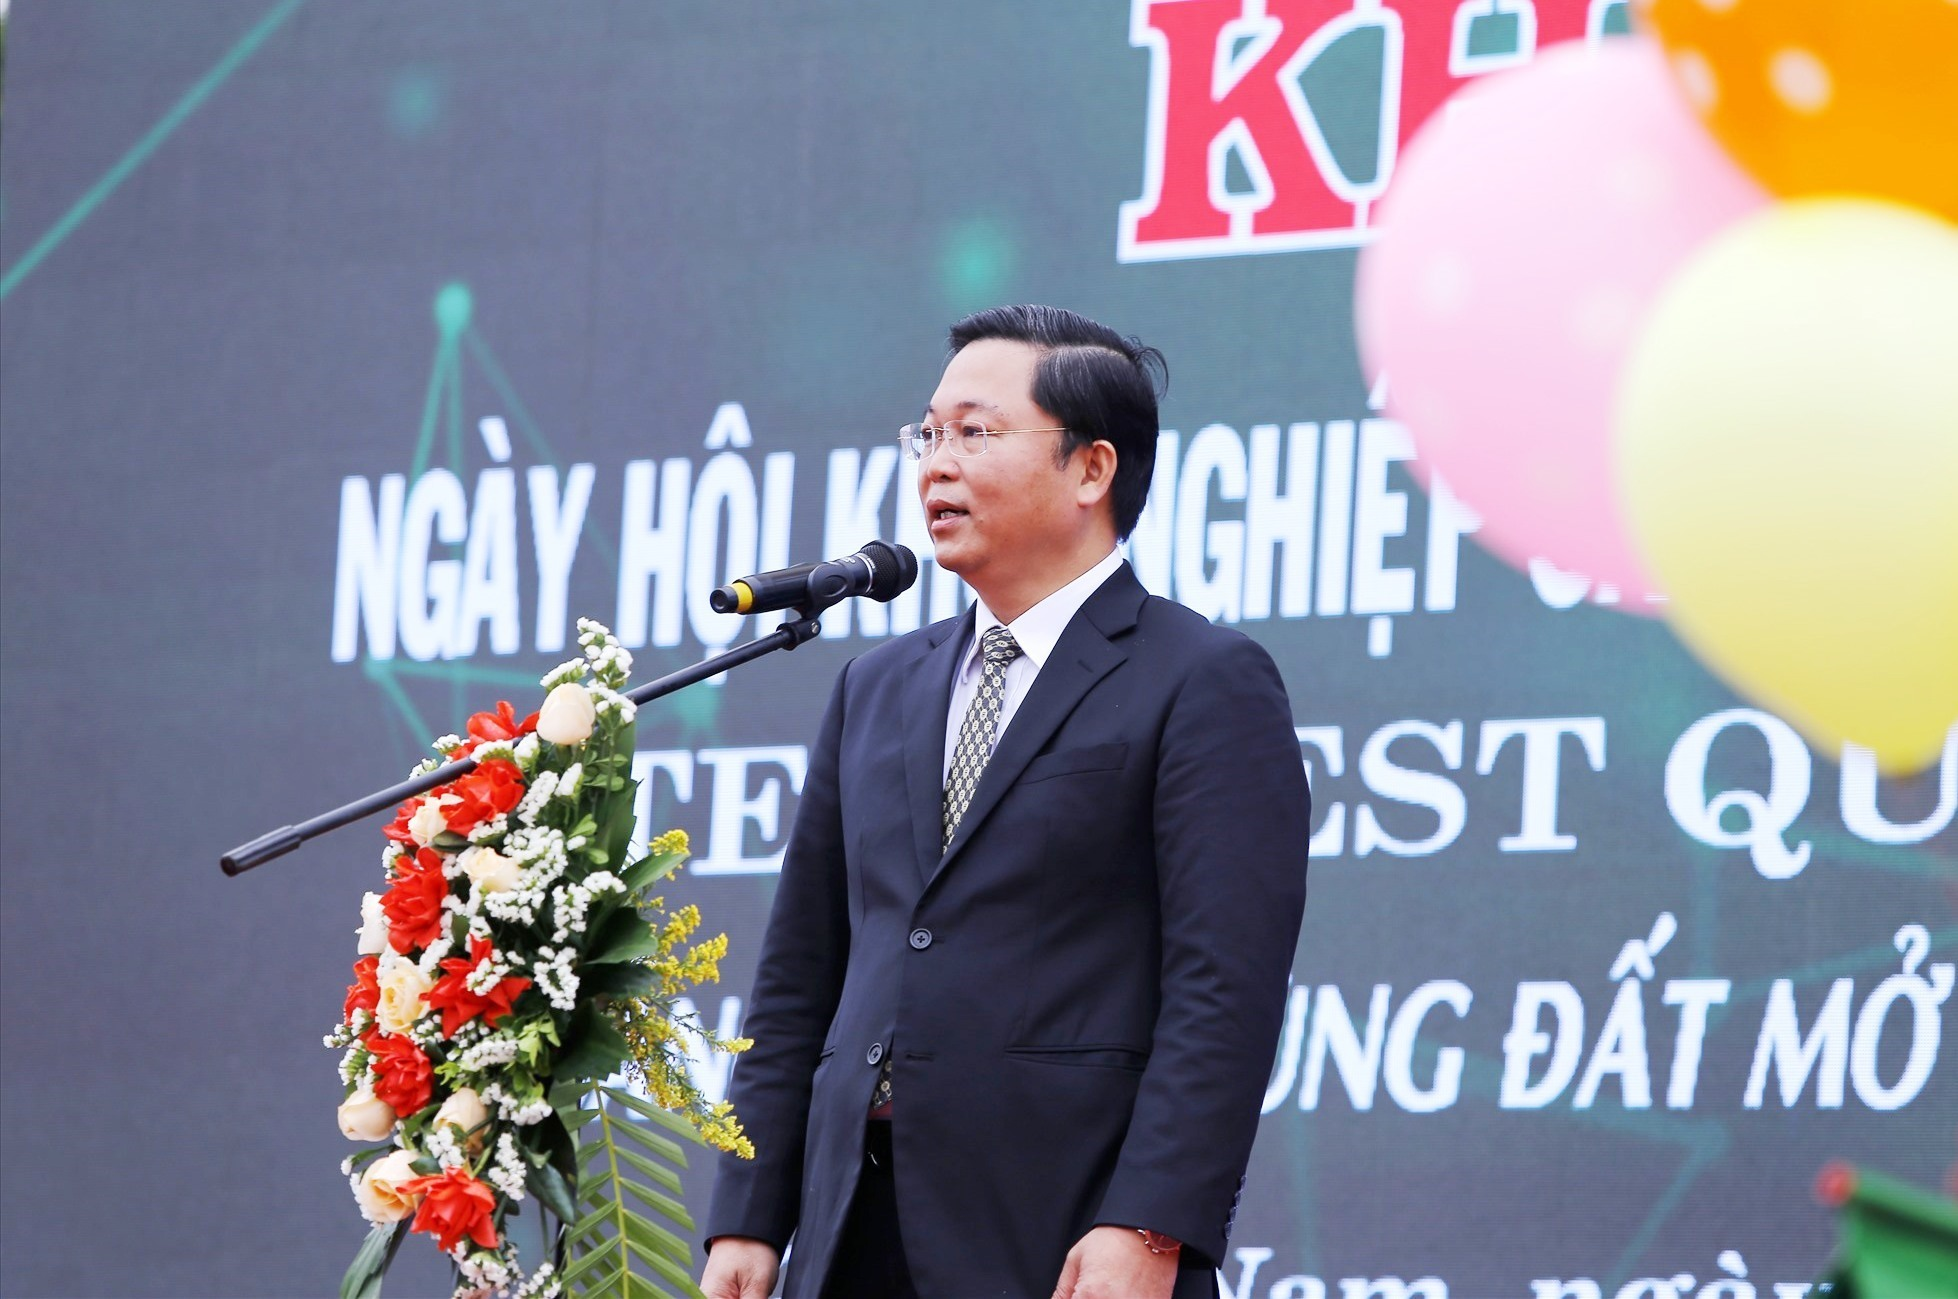 Chairman Thanh gives the speech at the festival